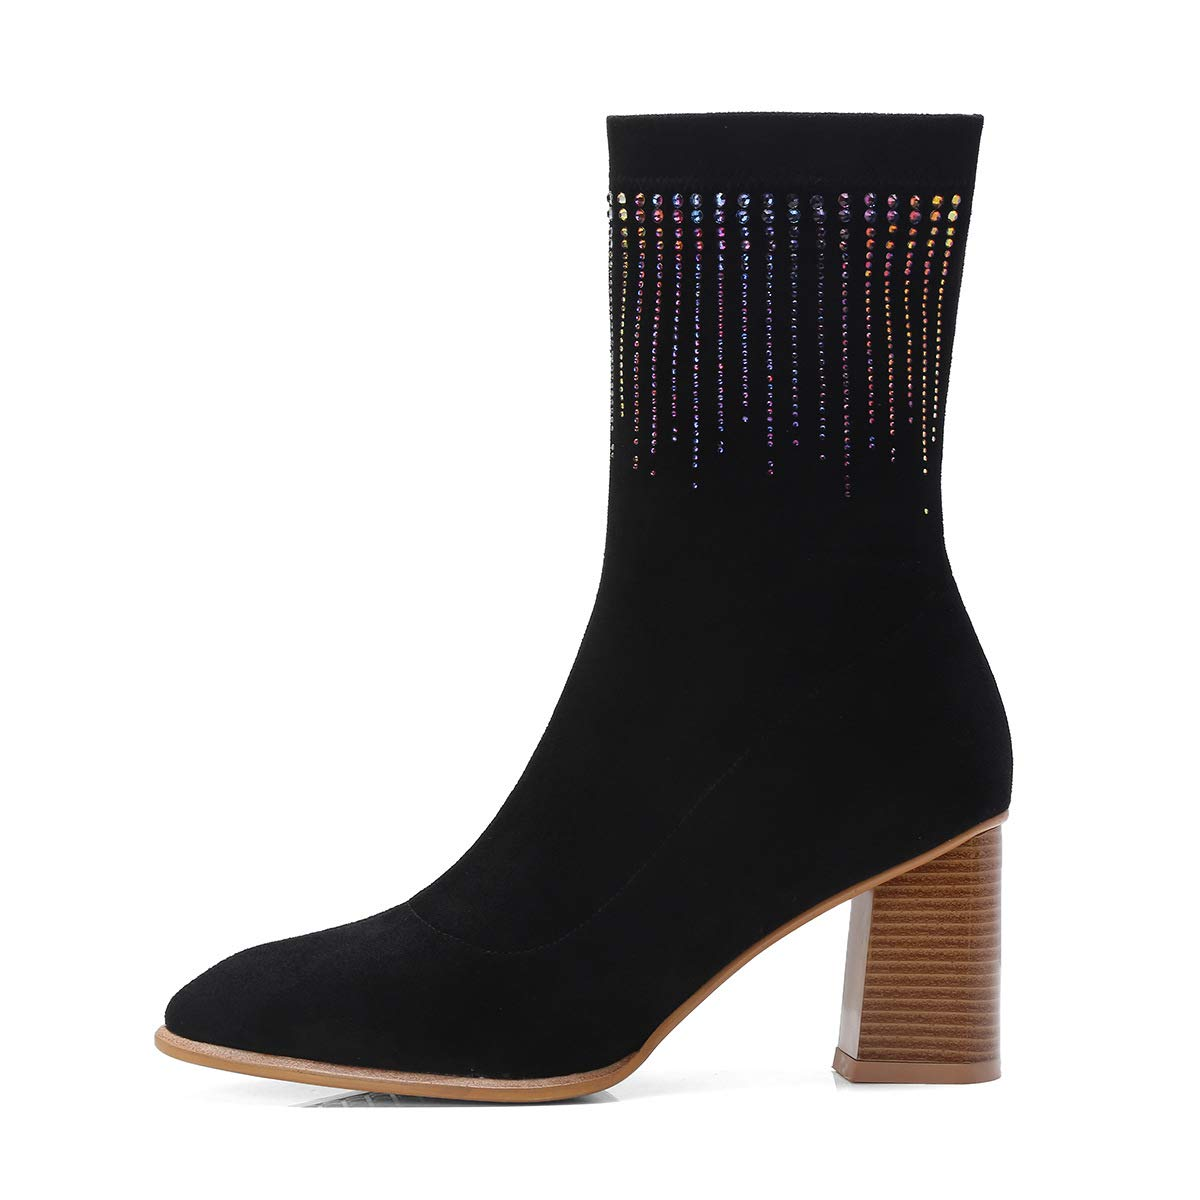 Black Women's Ankle Boots Fashion Rough High Heels Stretch Velvet + Rhinestone Zipper High-top shoes Wedding Party & Evening Formal shoes (color   Brown, Size   37)